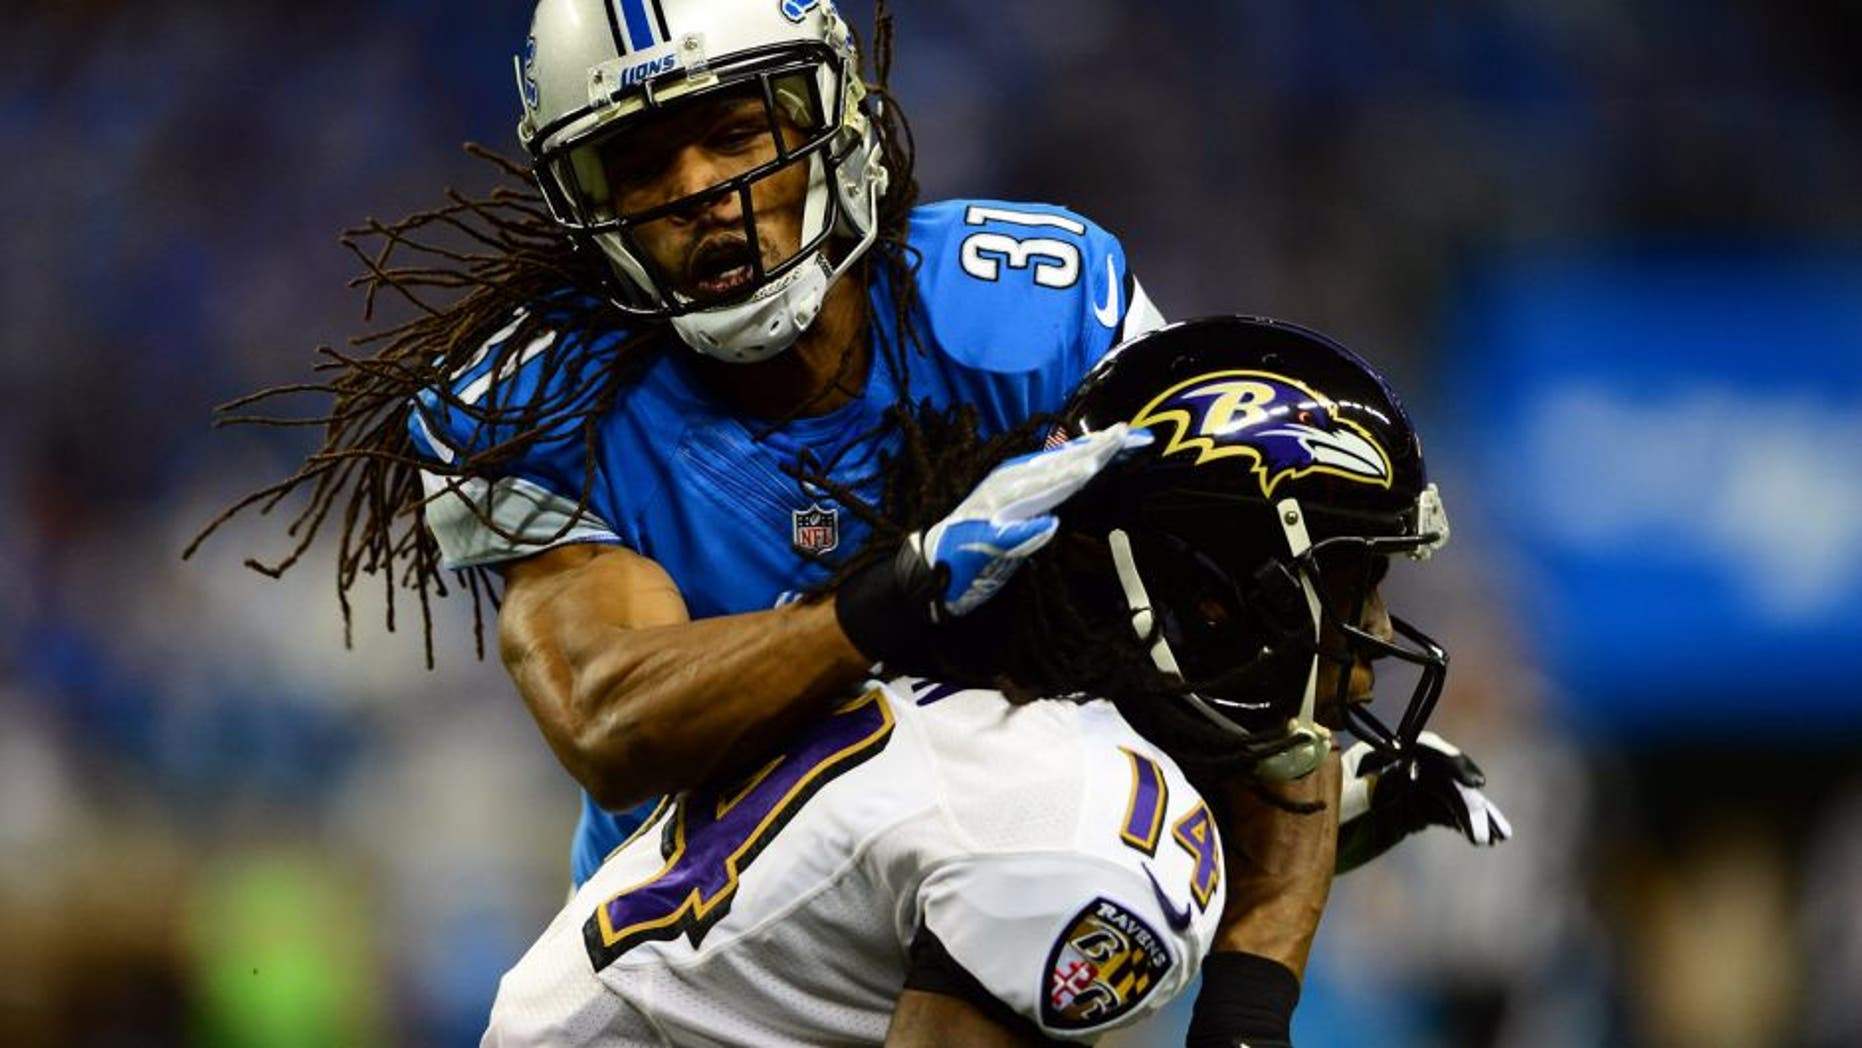 Dec 16, 2013; Detroit, MI, USA; Detroit Lions cornerback Rashean Mathis (31) tackles by Baltimore Ravens wide receiver Marlon Brown (14) during the second quarter at Ford Field. Mandatory Credit: Andrew Weber-USA TODAY Sports